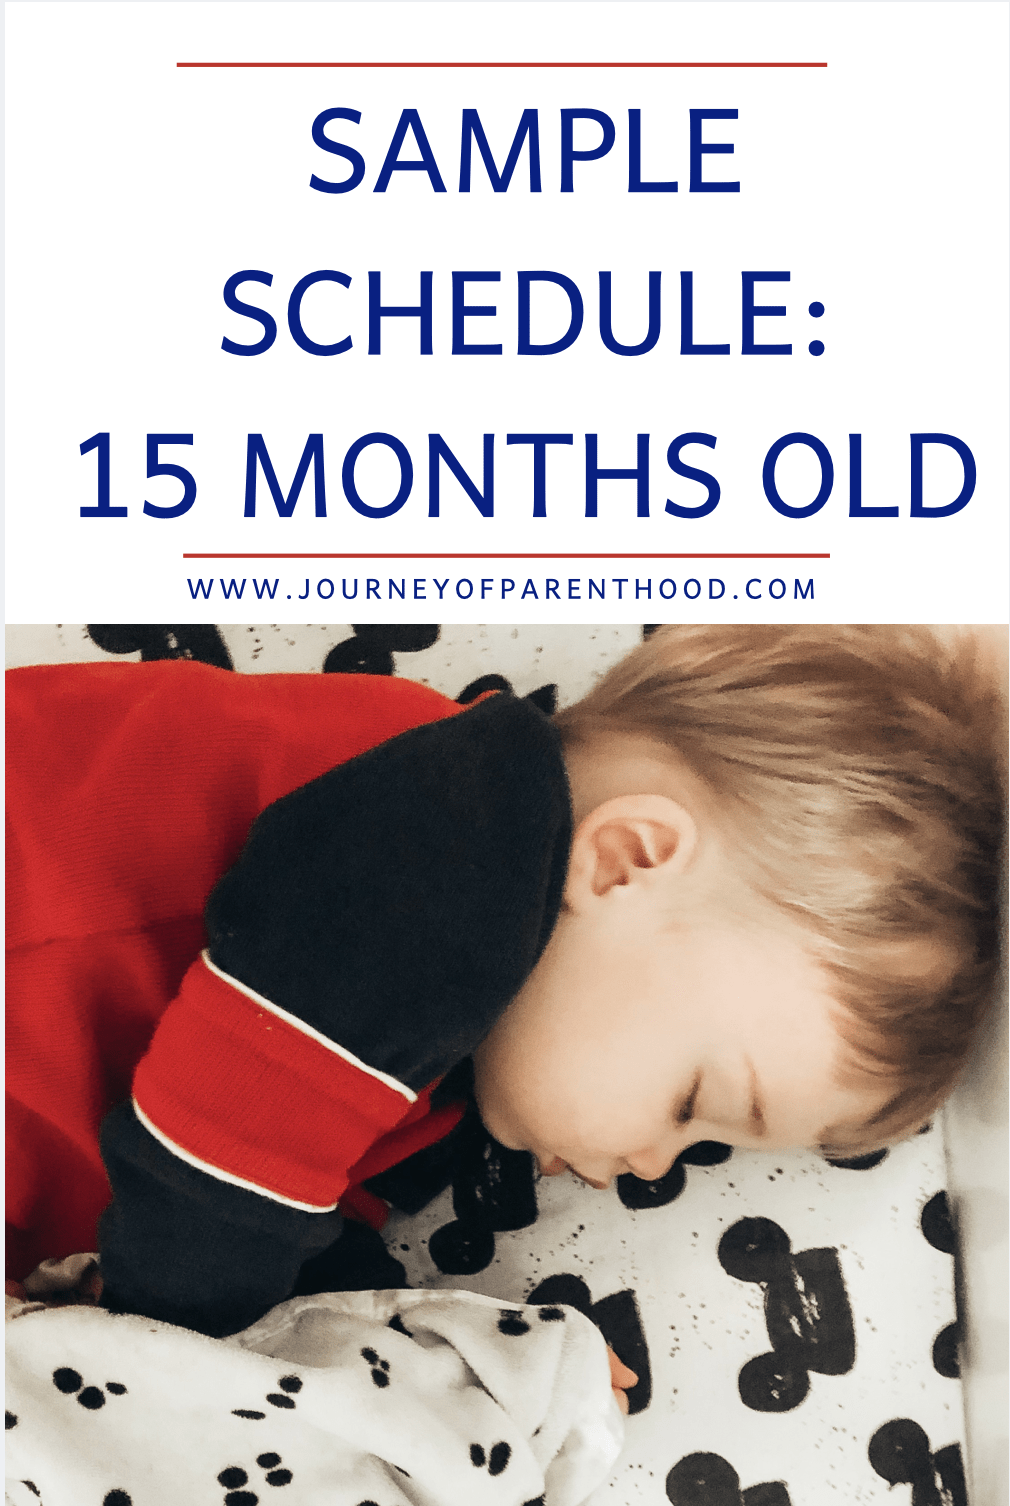 sample schedule for 15 months old